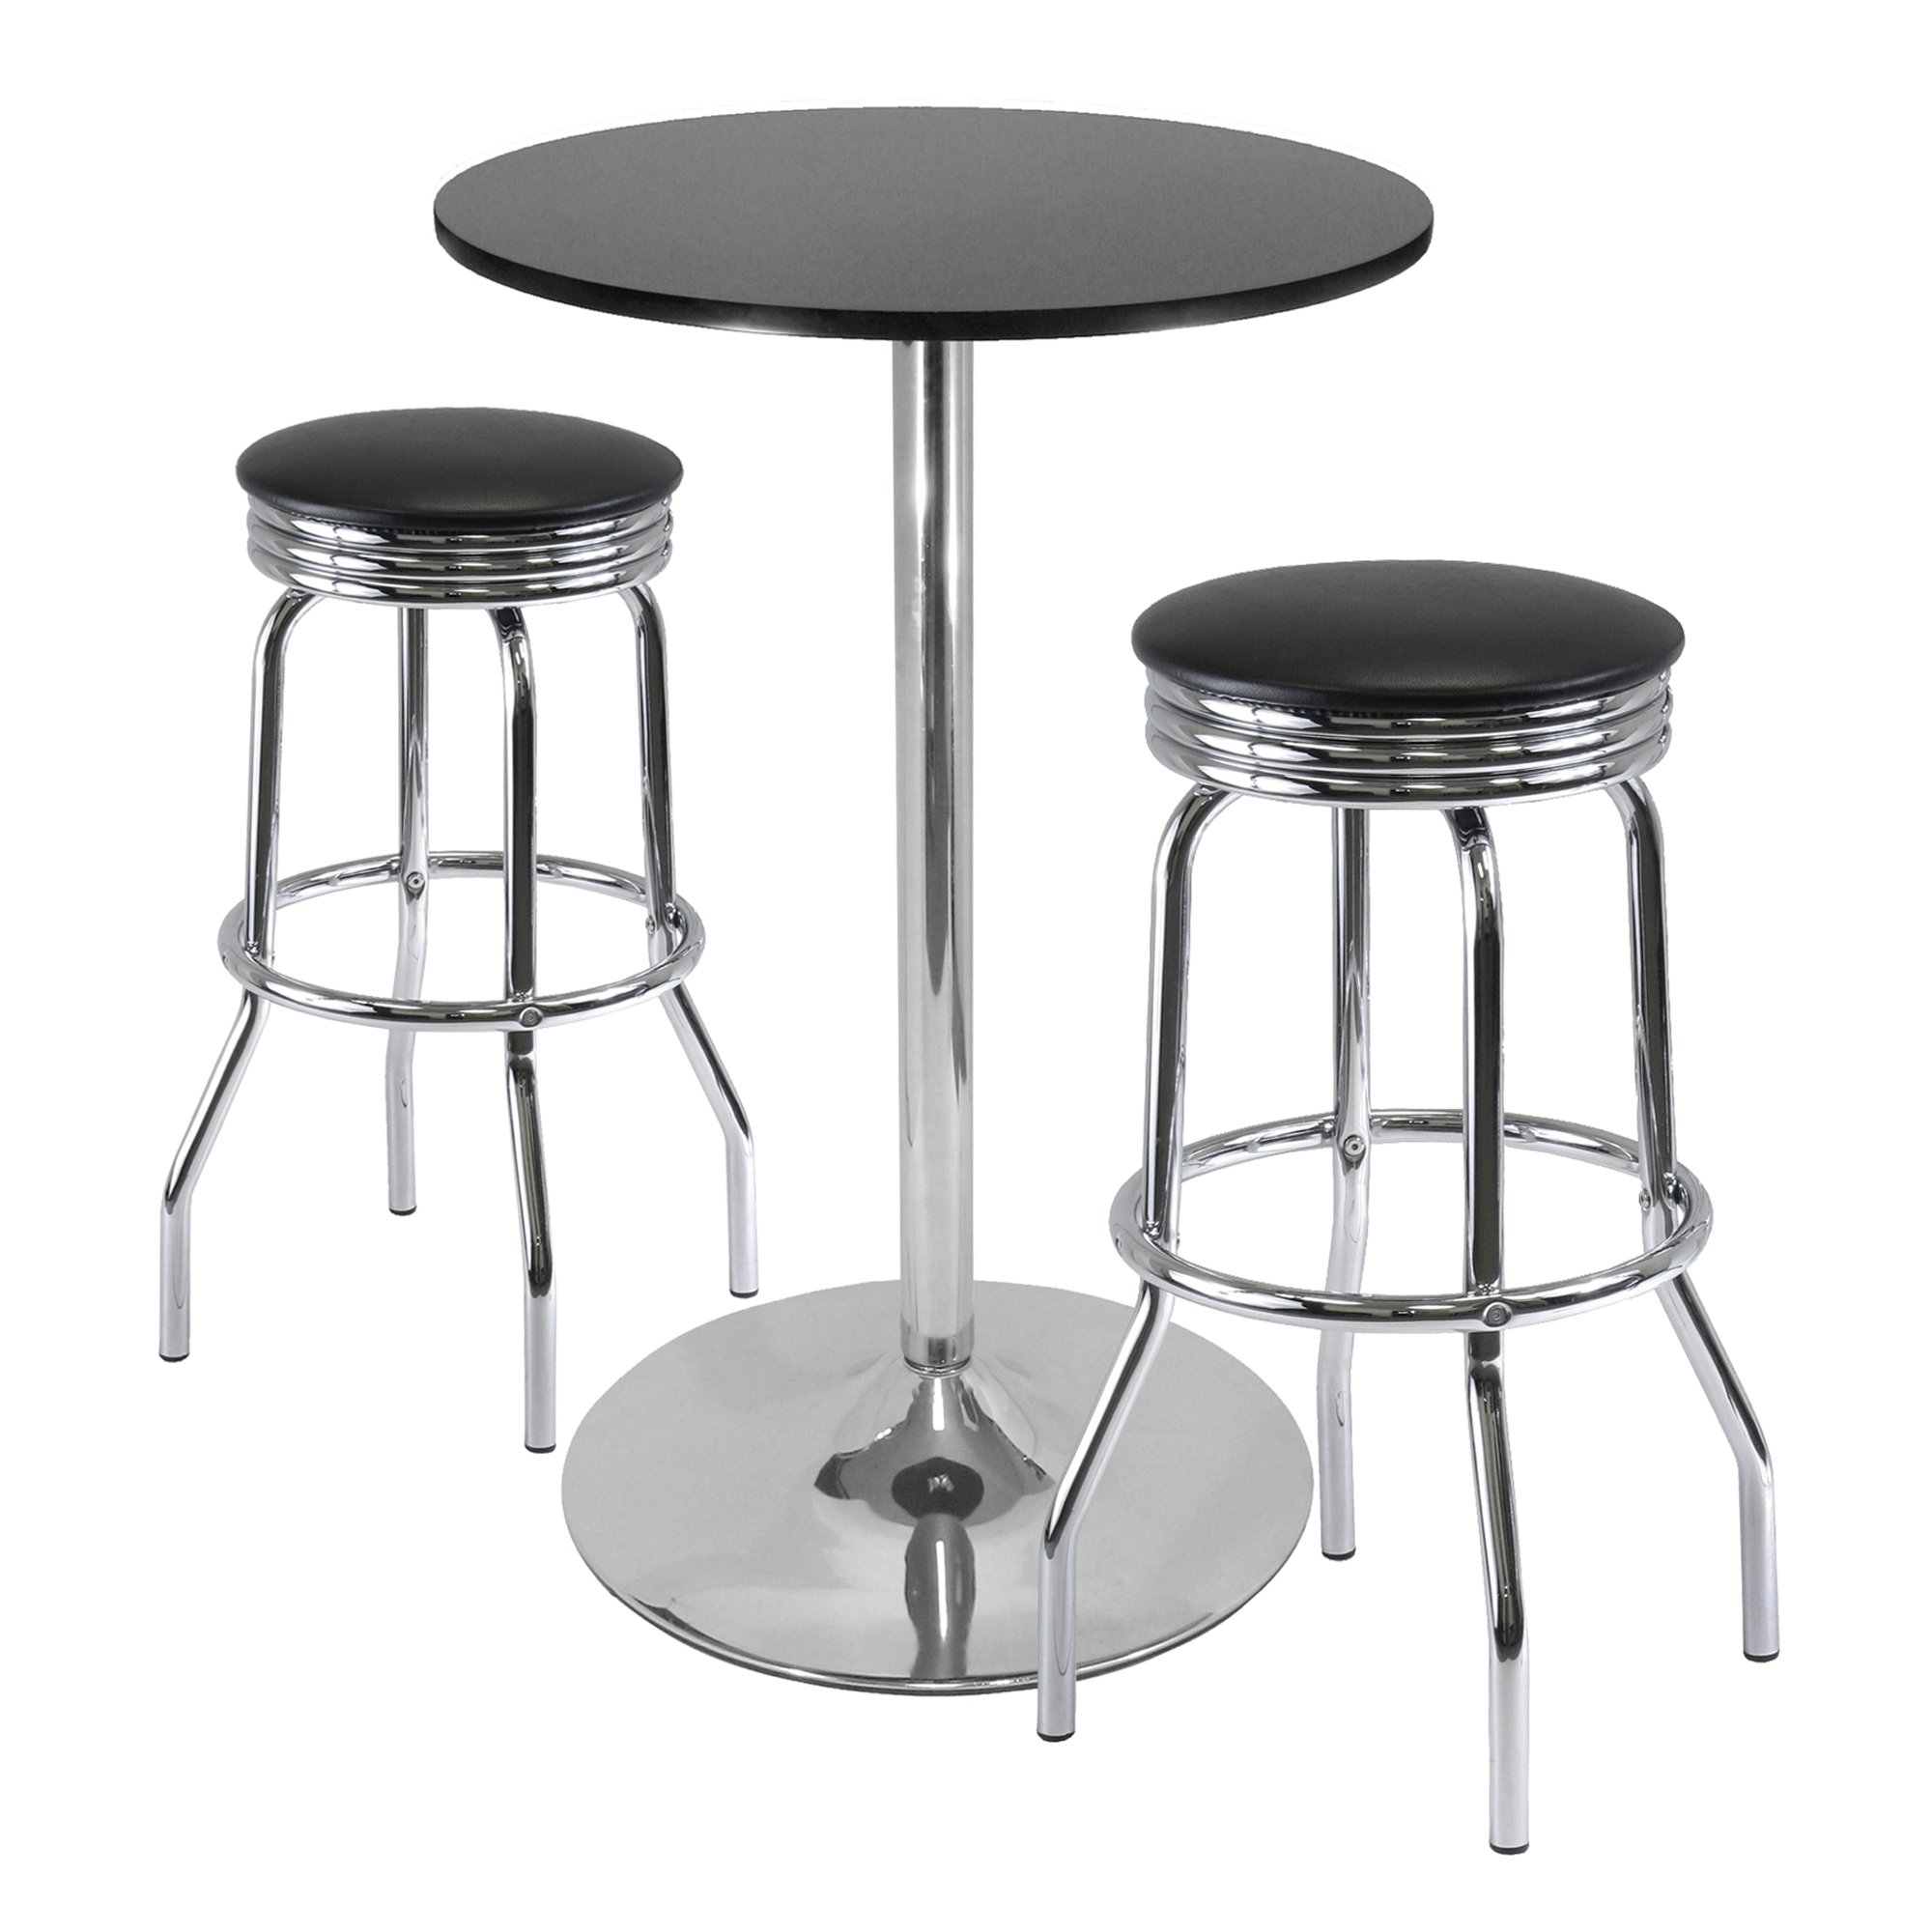 Winsome Summit 3-Piece Pub Table Set with 28-Inch Table and 2 Stools